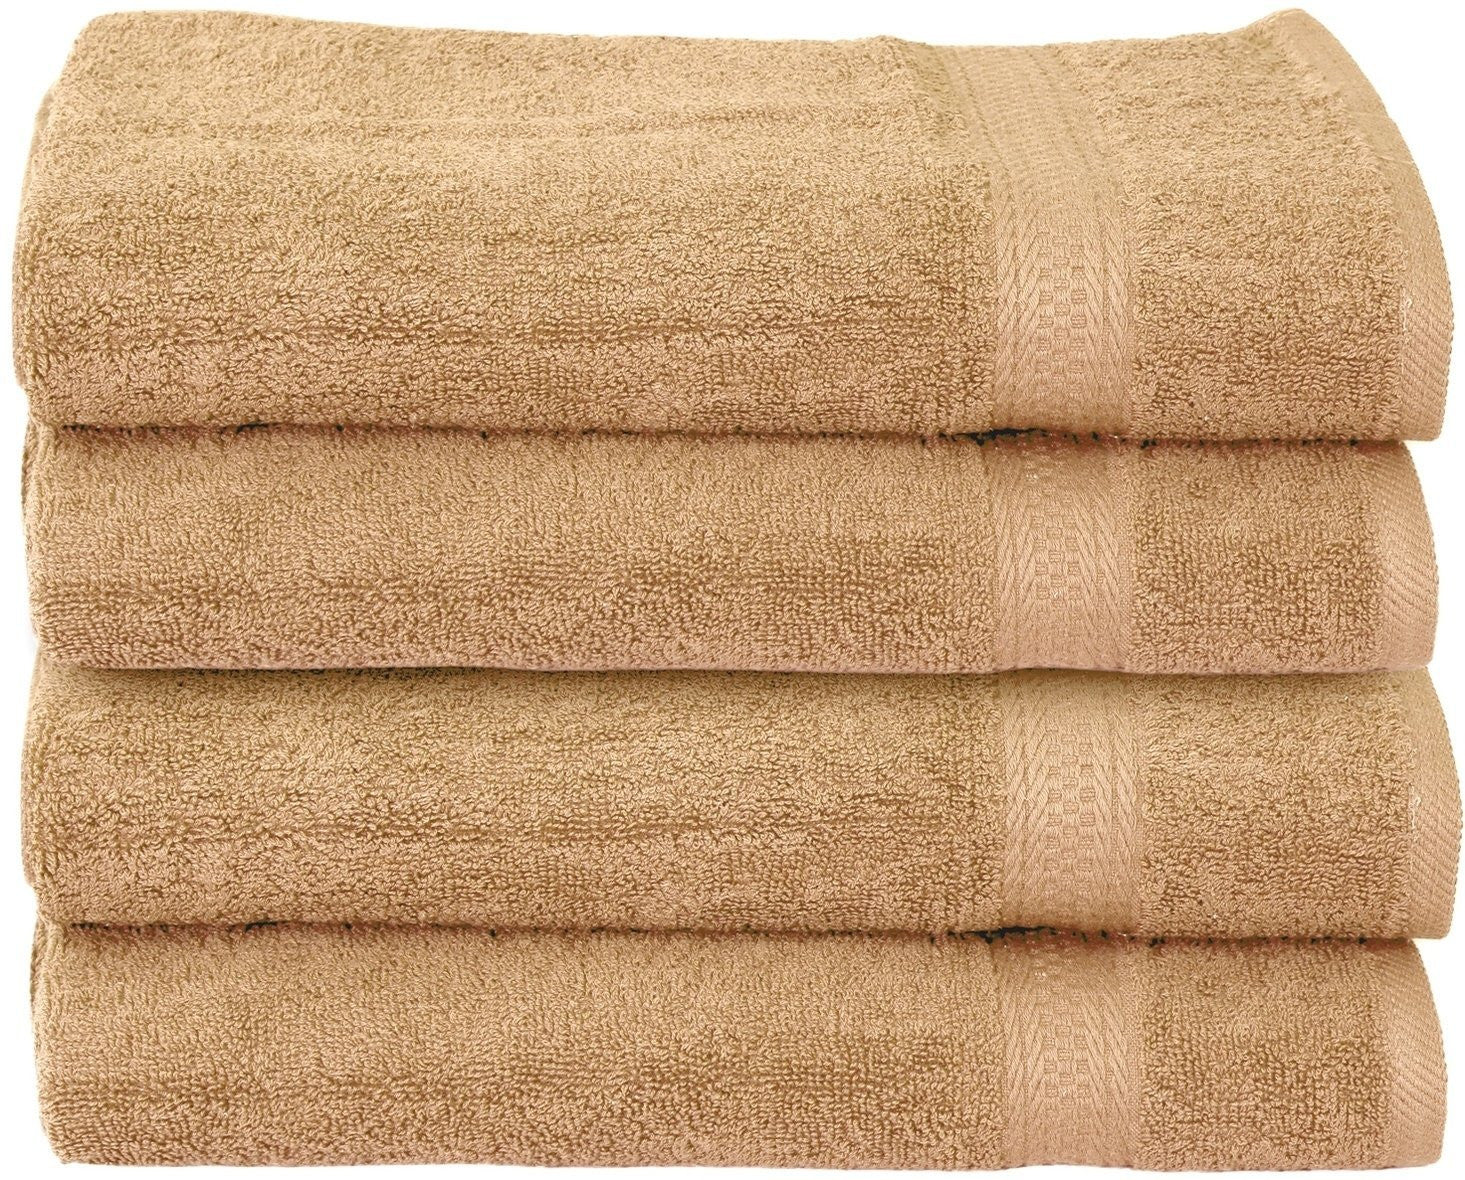 Luxury Cotton Hand Towels (Beige-4 Pack)